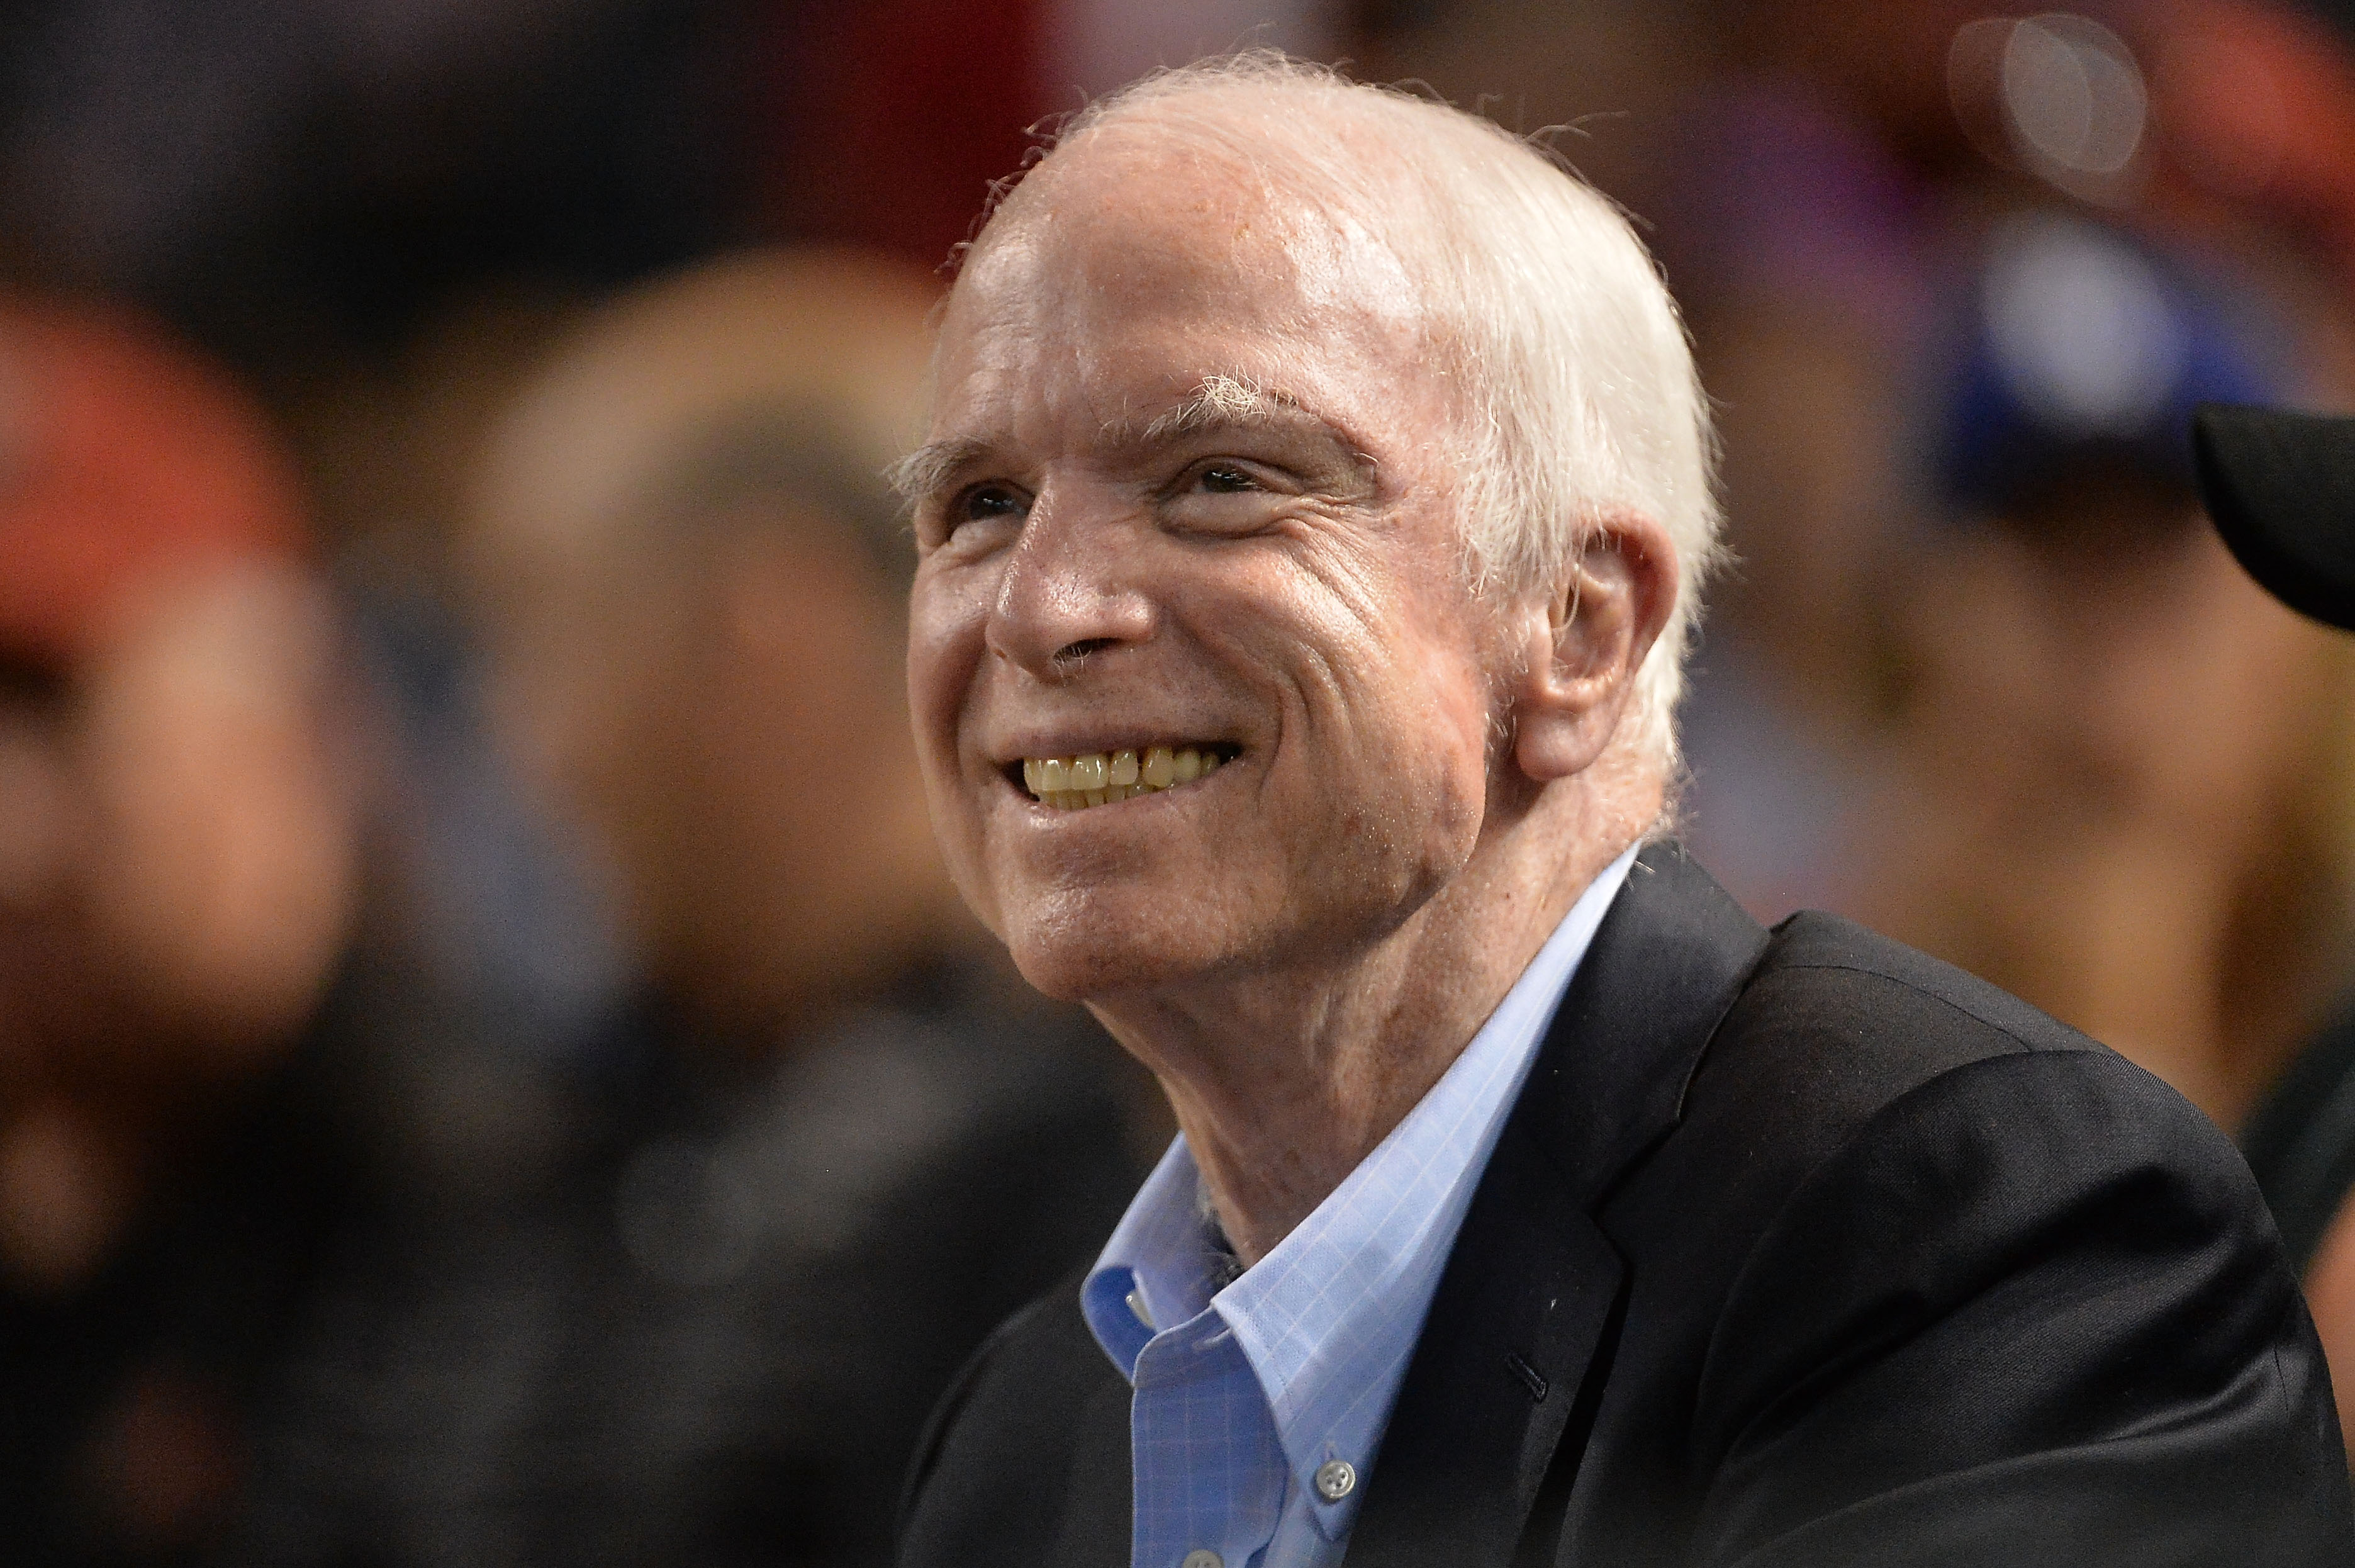 Senator John McCain smiles while attending the MLB game between the Los Angeles Dodgers and Arizona Diamondbacks at Chase Field on August 10, 2017 in Phoenix, Arizona.